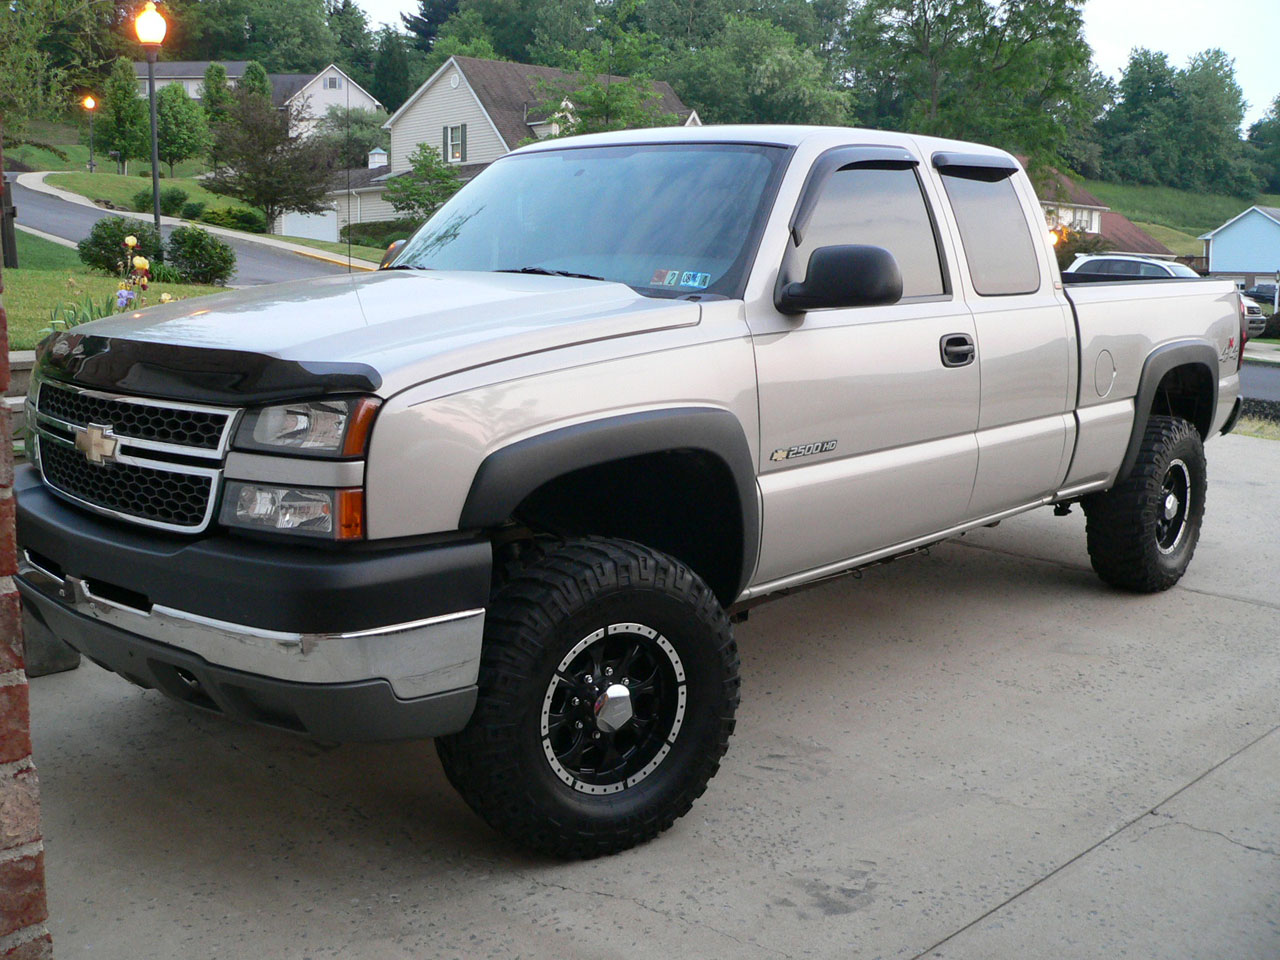 Picture of 2005 Chevrolet Silverado 2500HD 4 Dr LS Extended Cab SB HD